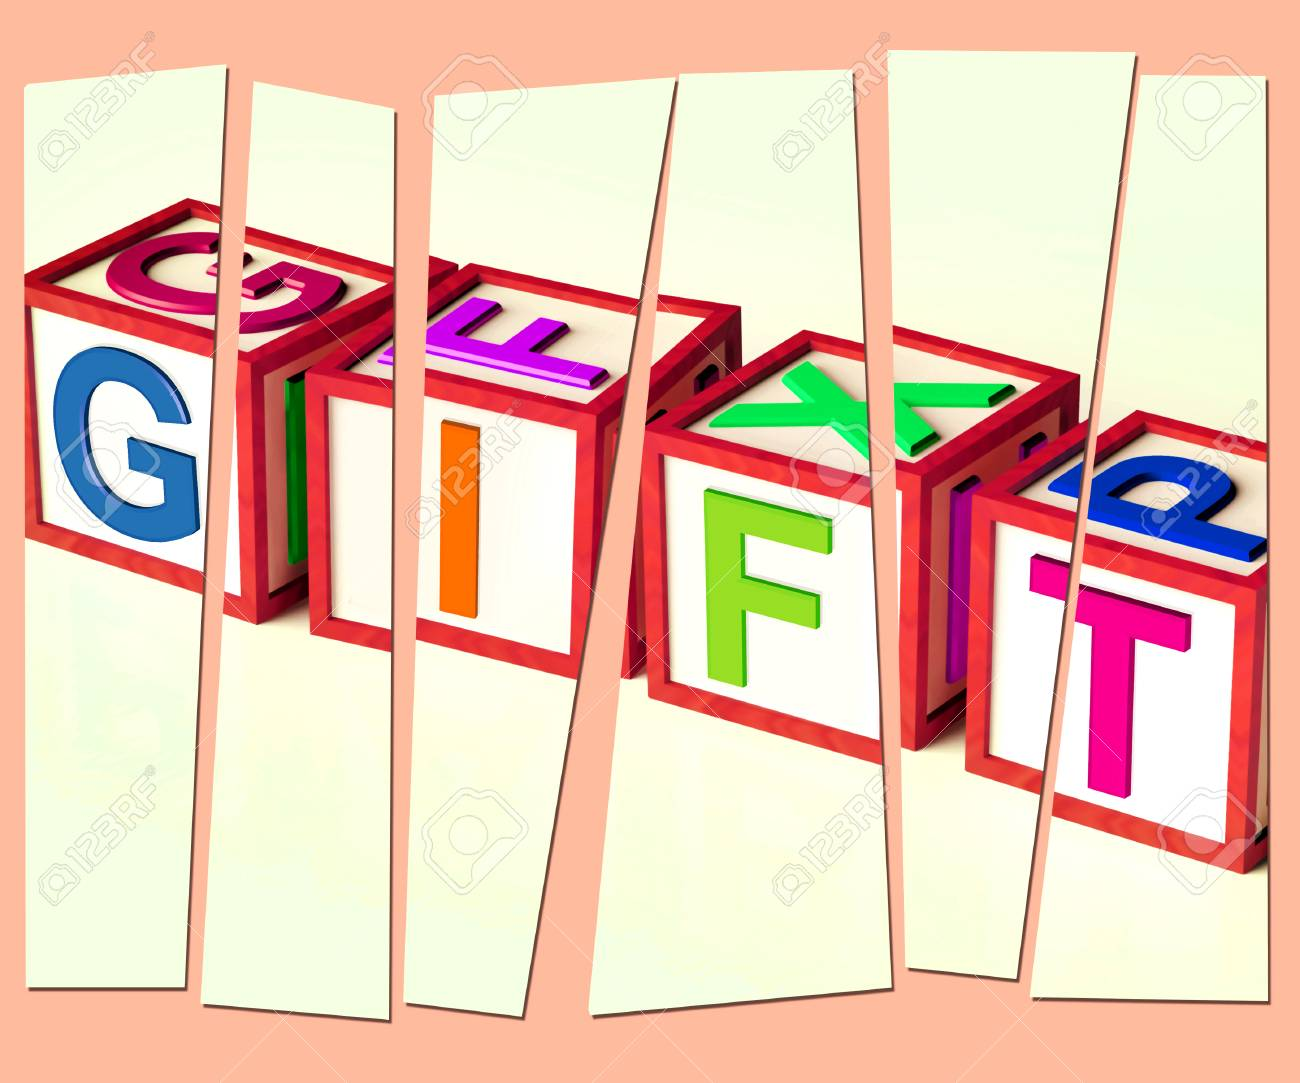 Gift Letters Meaning Giveaway Present Or Offer Stock Photo - 29054228